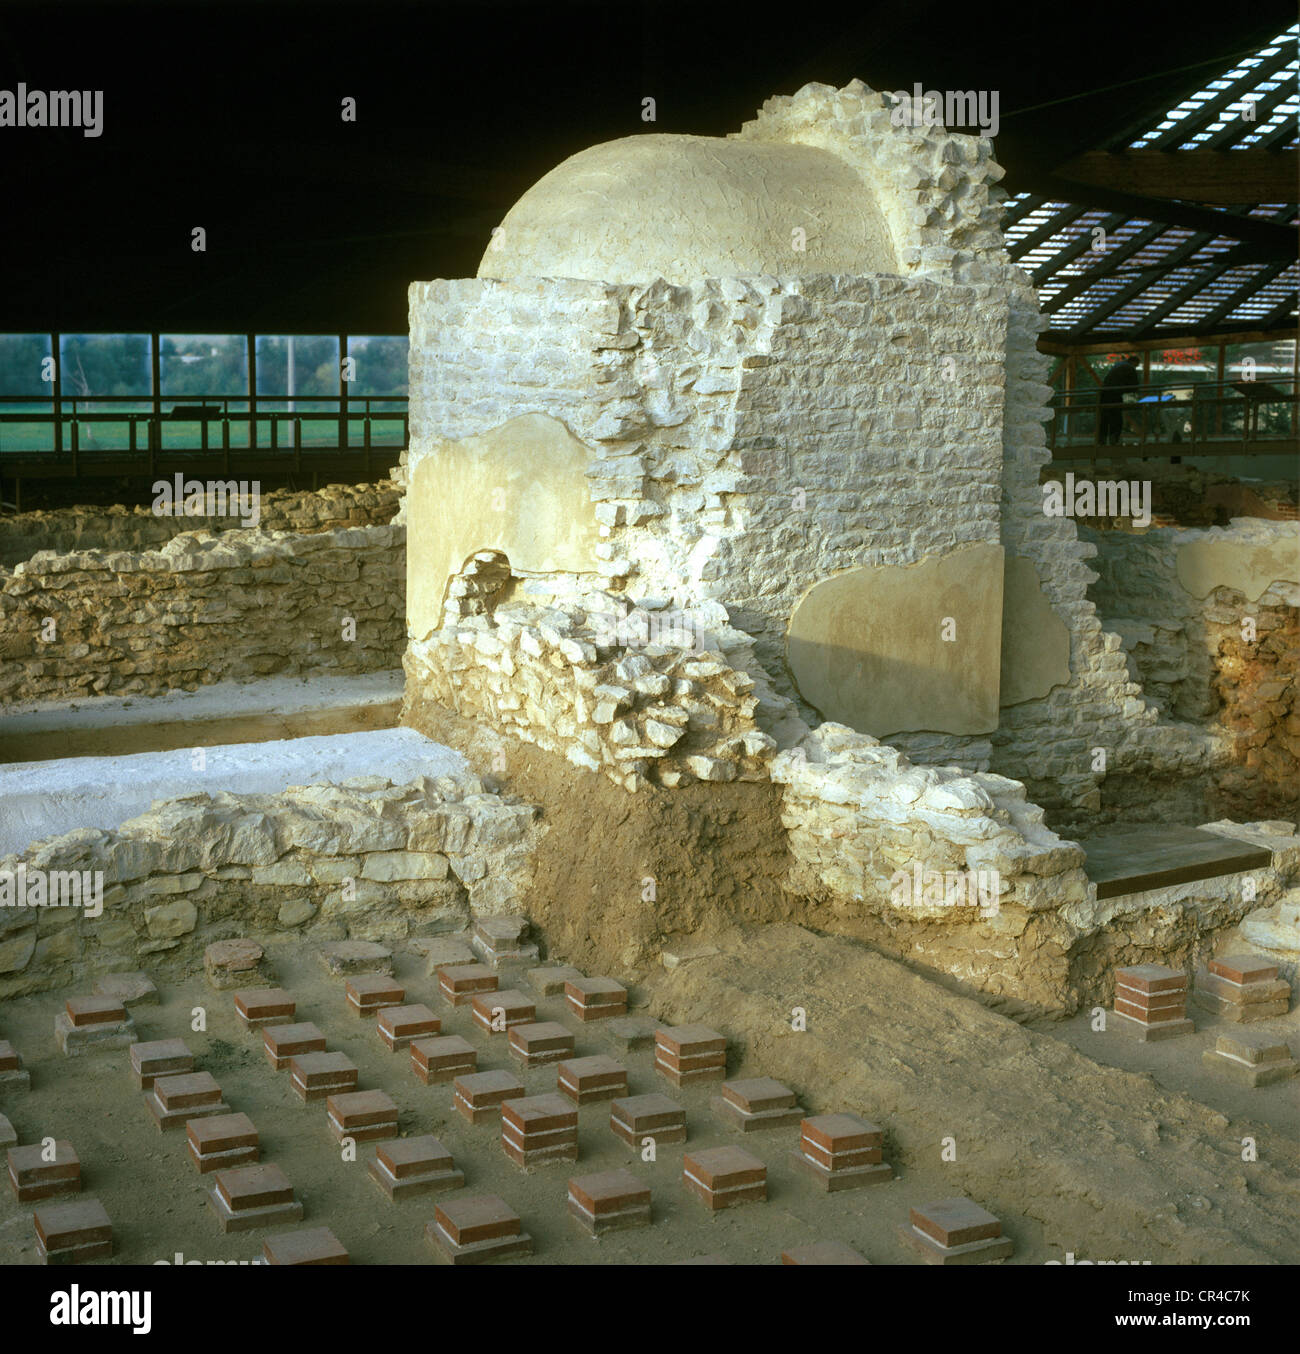 Sweat bath in front of the cold bath, reconstruction, Roman excavations, Weissenburg, Central Franconia, Franconia, - Stock Image